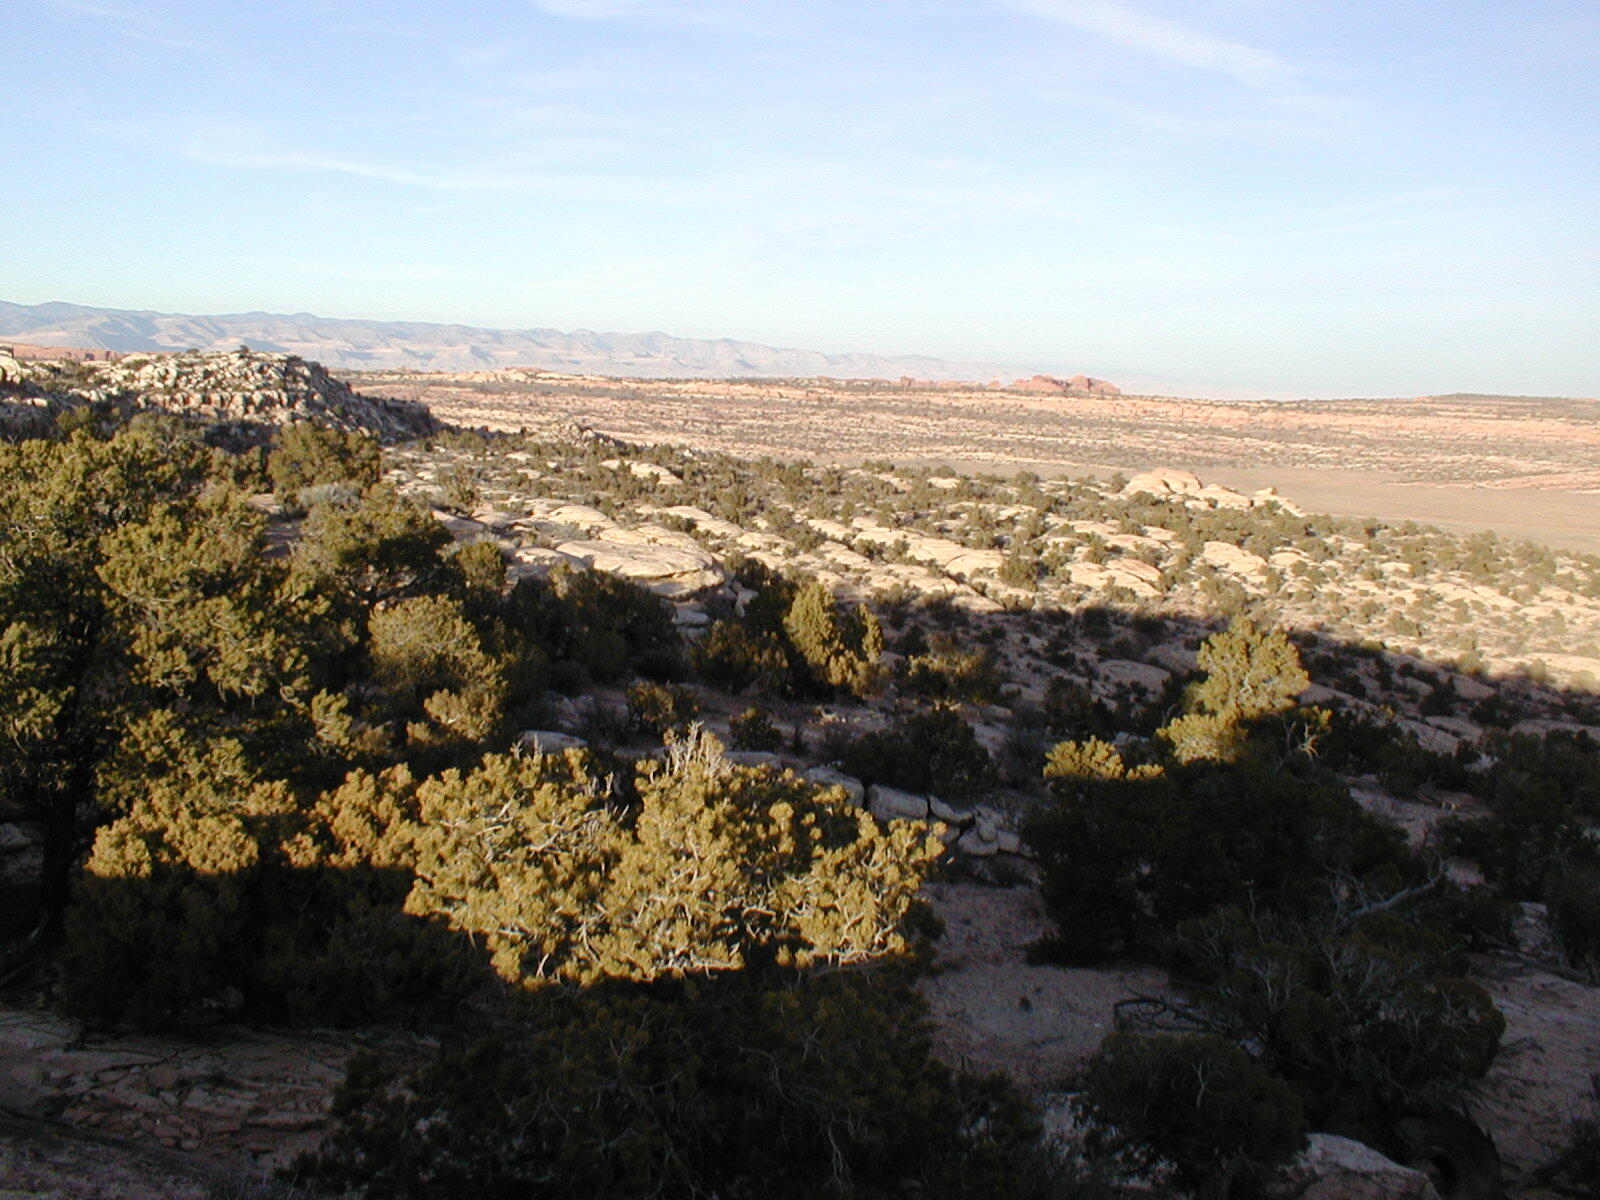 042 - Pinyon-Juniper Ecology and Management